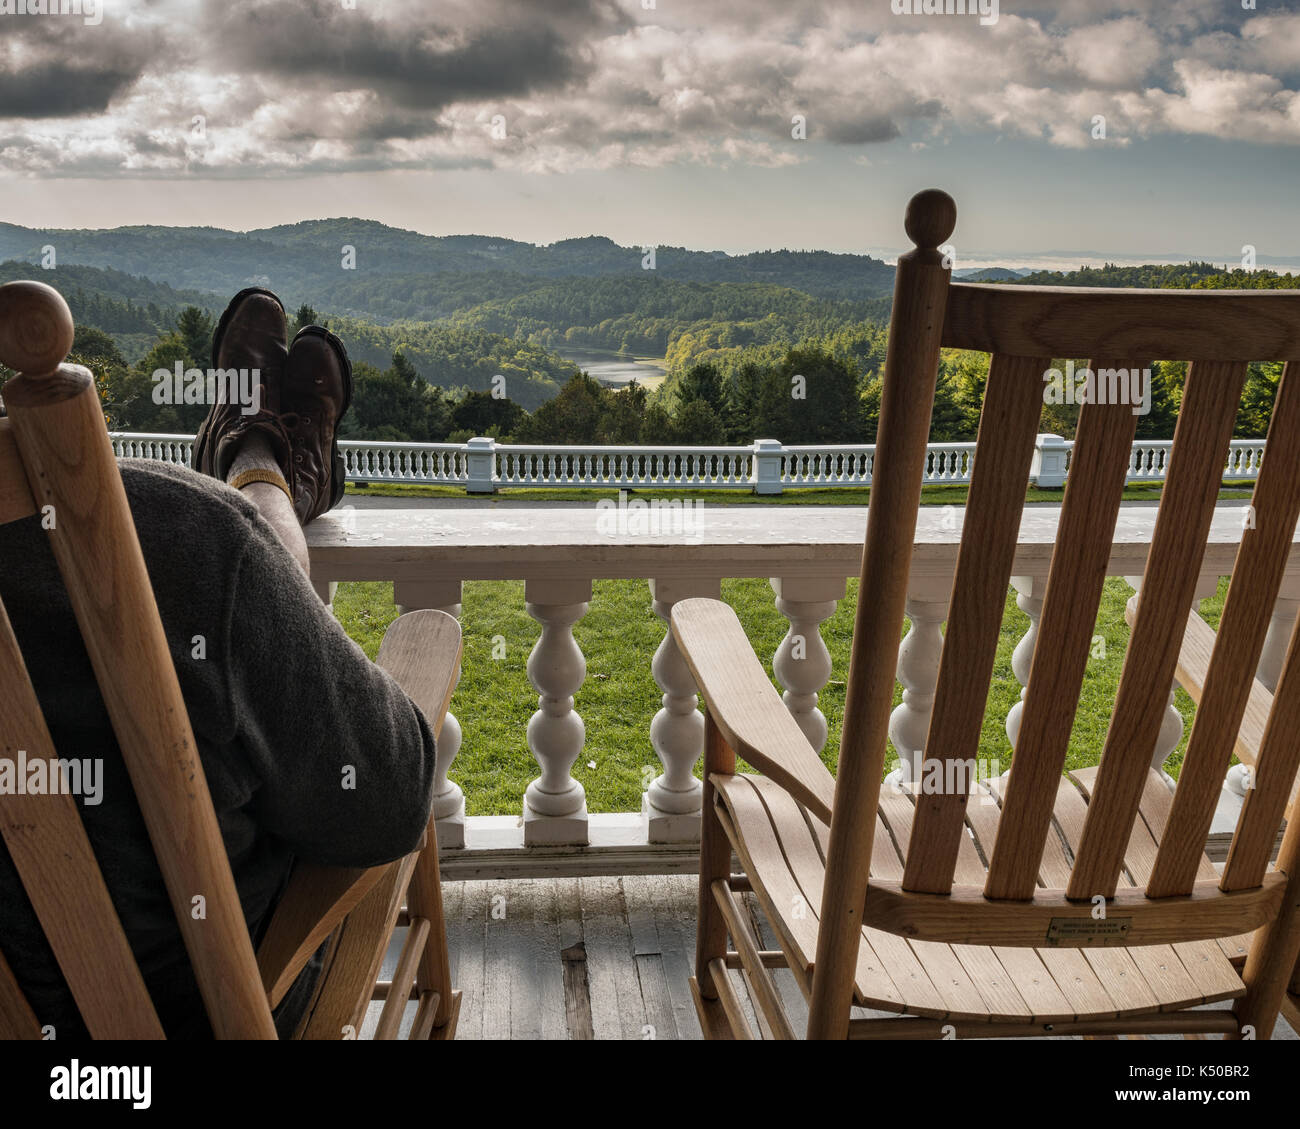 Wondrous Feet Up Relaxing Rocking Chair Front Porch Amazing View Gmtry Best Dining Table And Chair Ideas Images Gmtryco